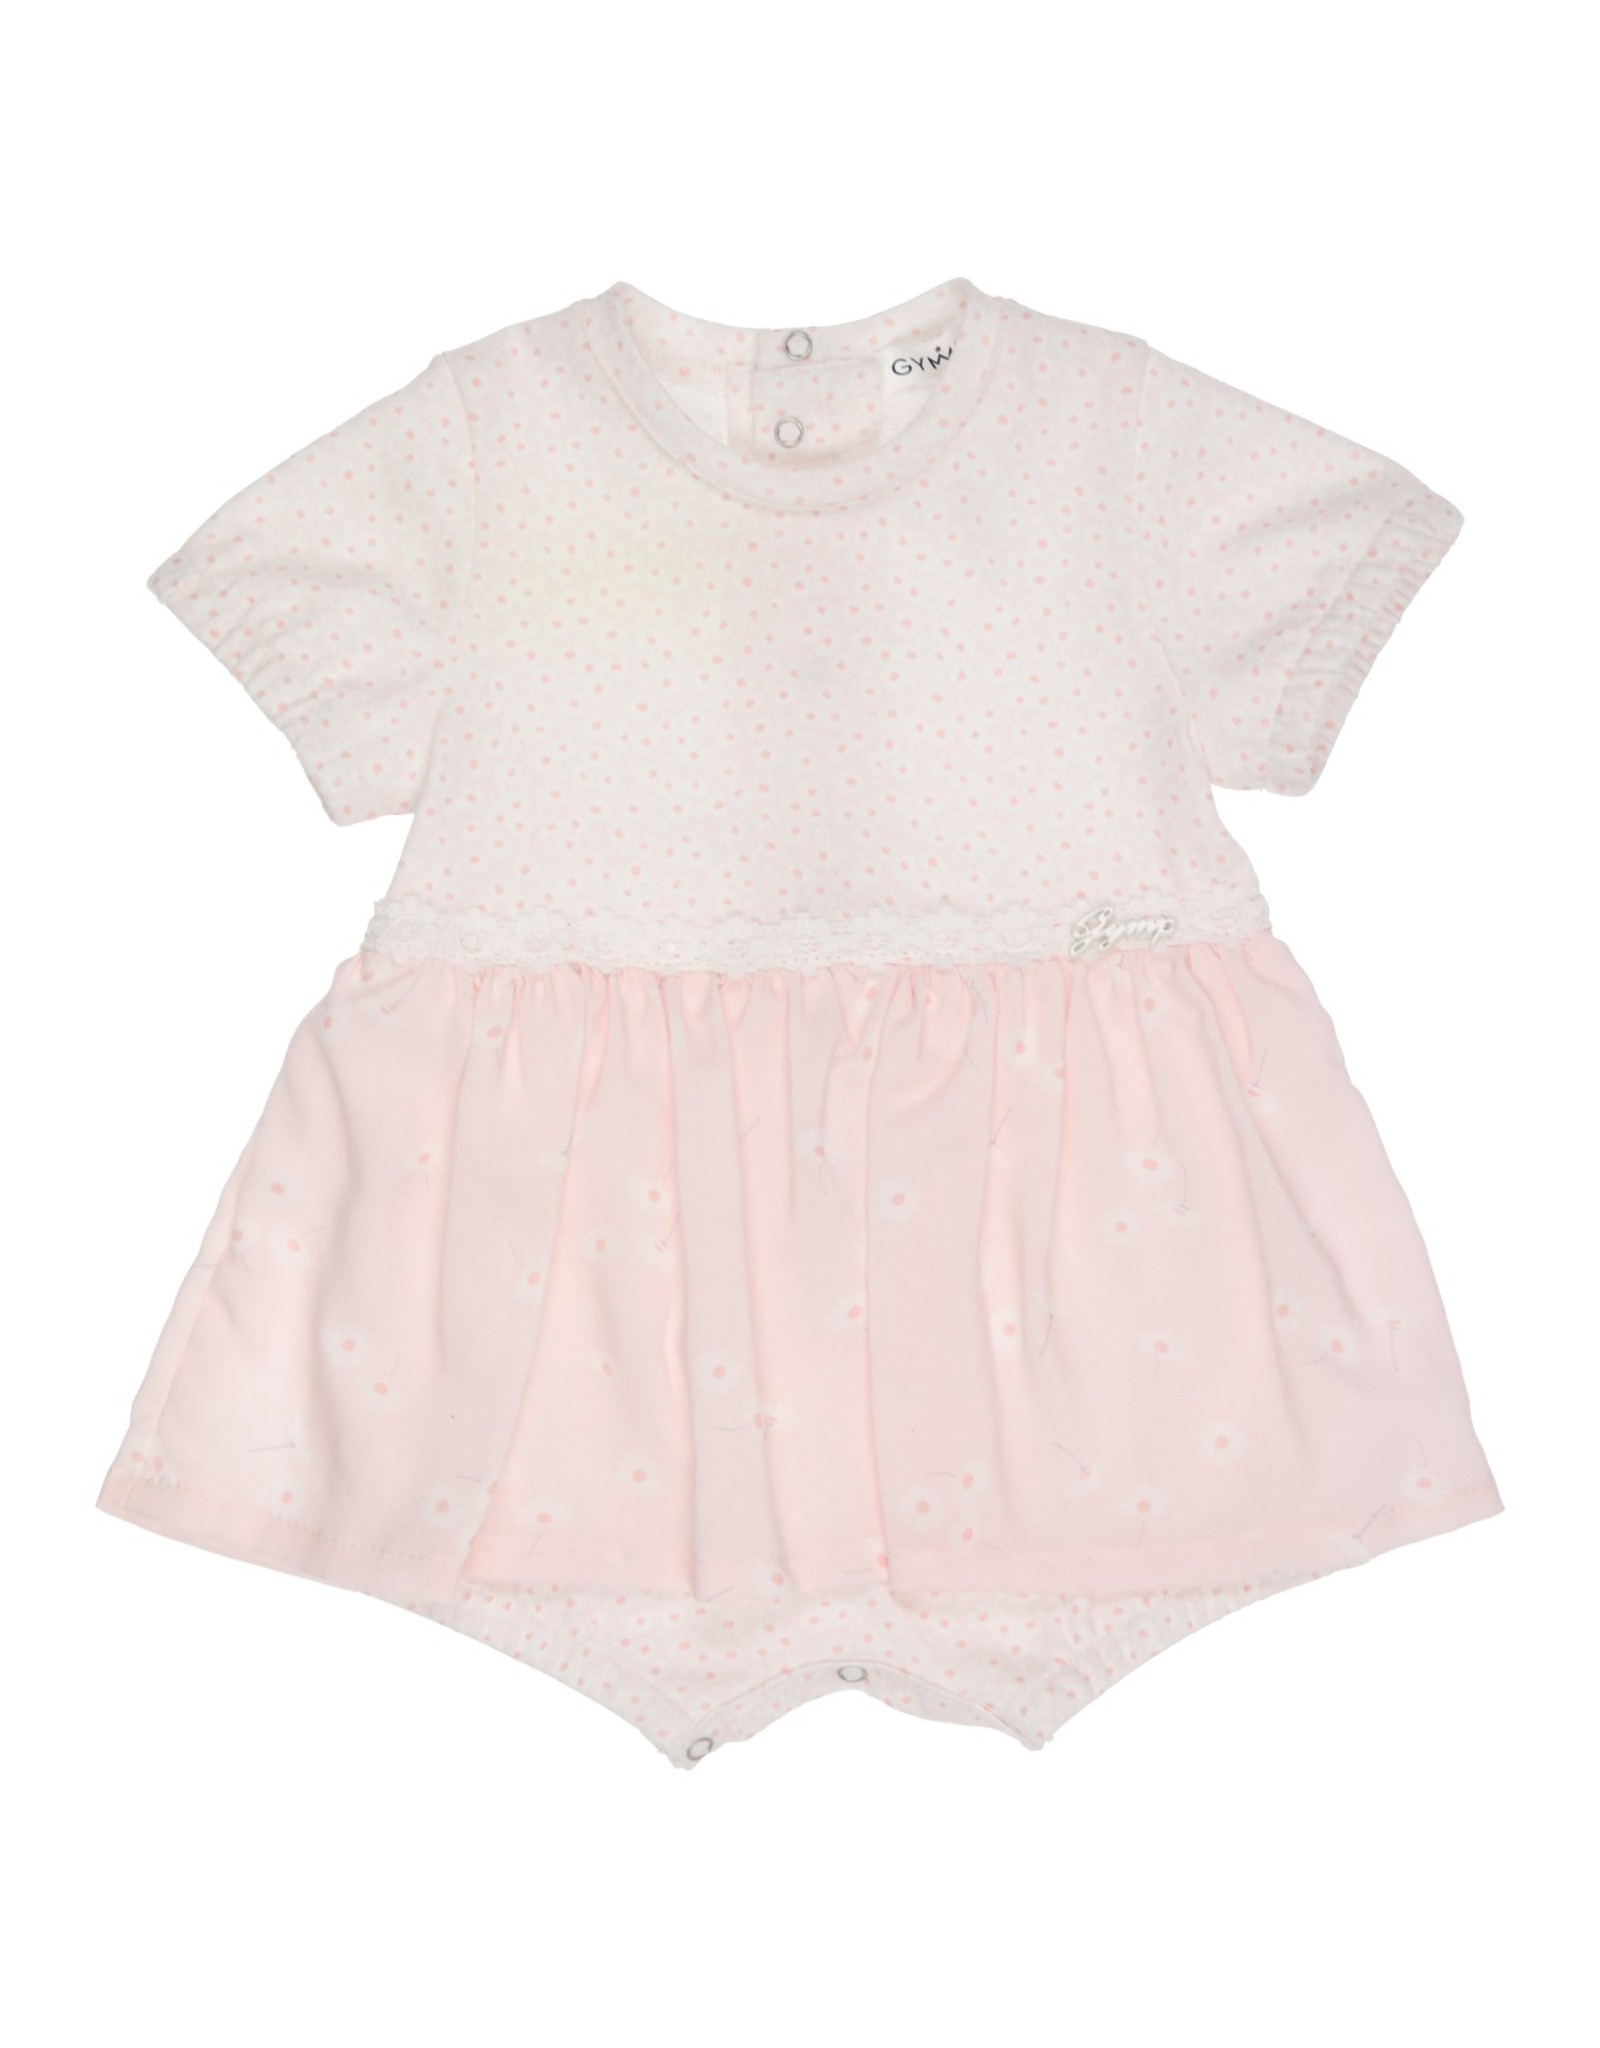 Gymp BABYPAKJE  ROMPER WITH SKIRT , OFFWHITE/VIEUXROSE